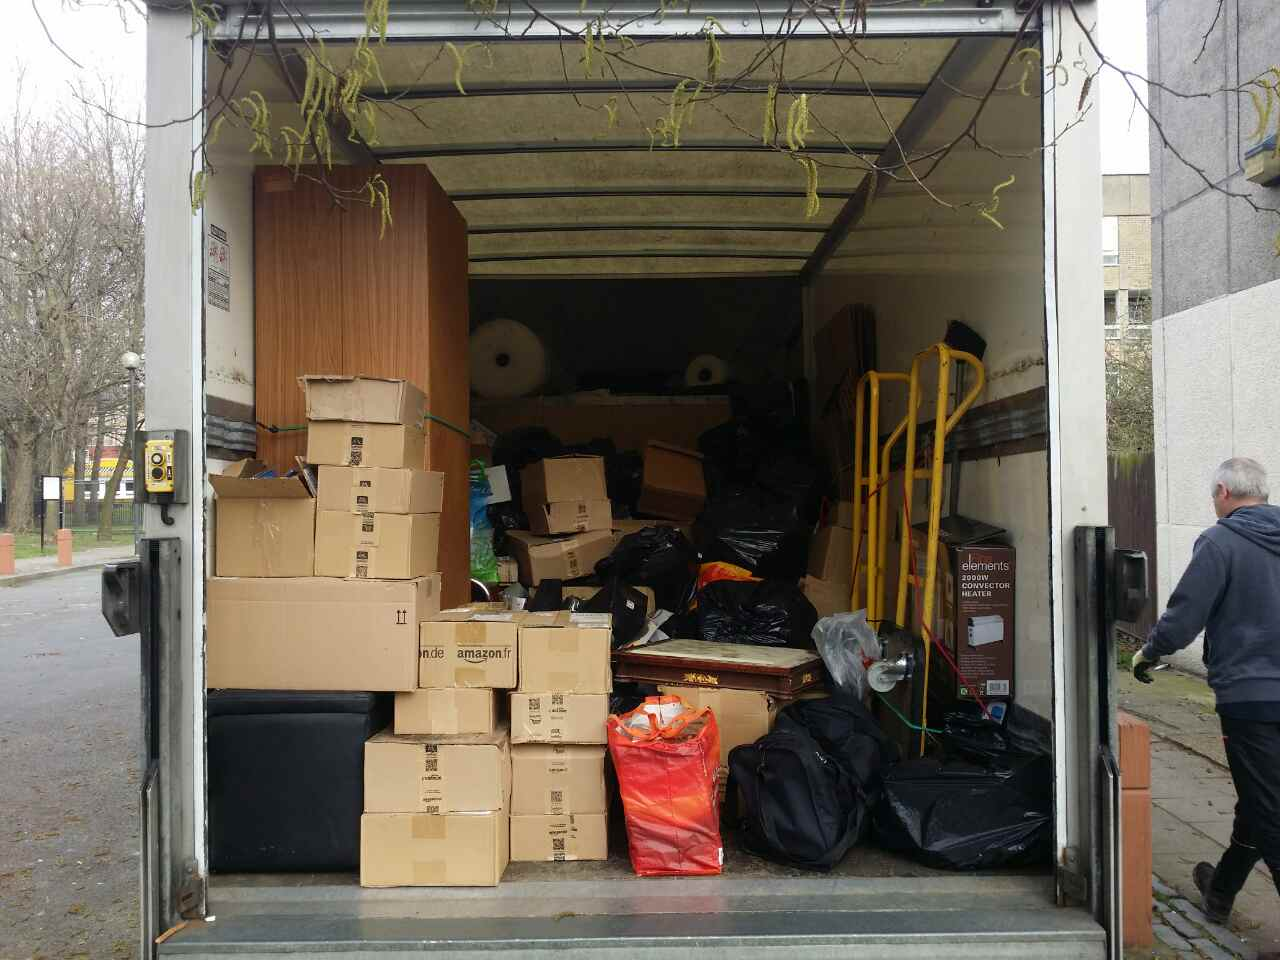 Chelsea movers services